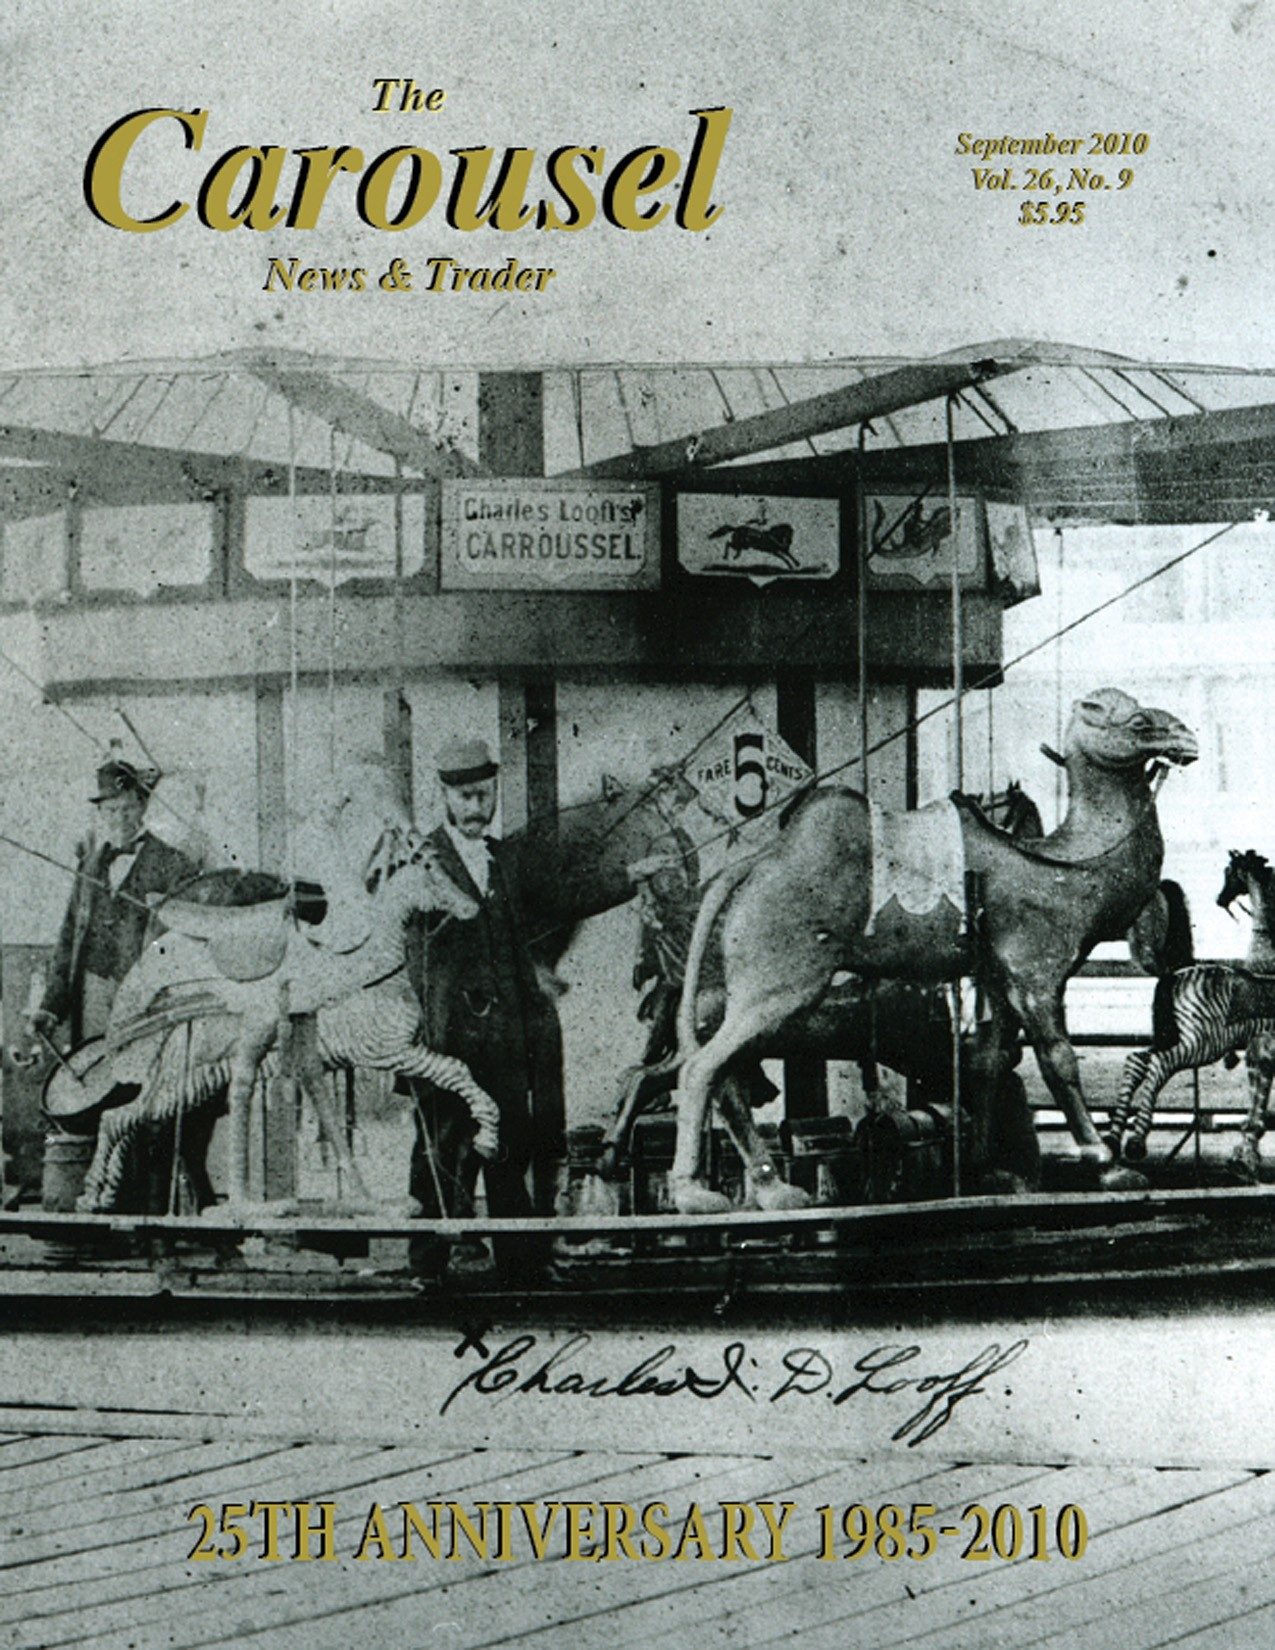 Issue No. 9, Vol. 26 – September 2010